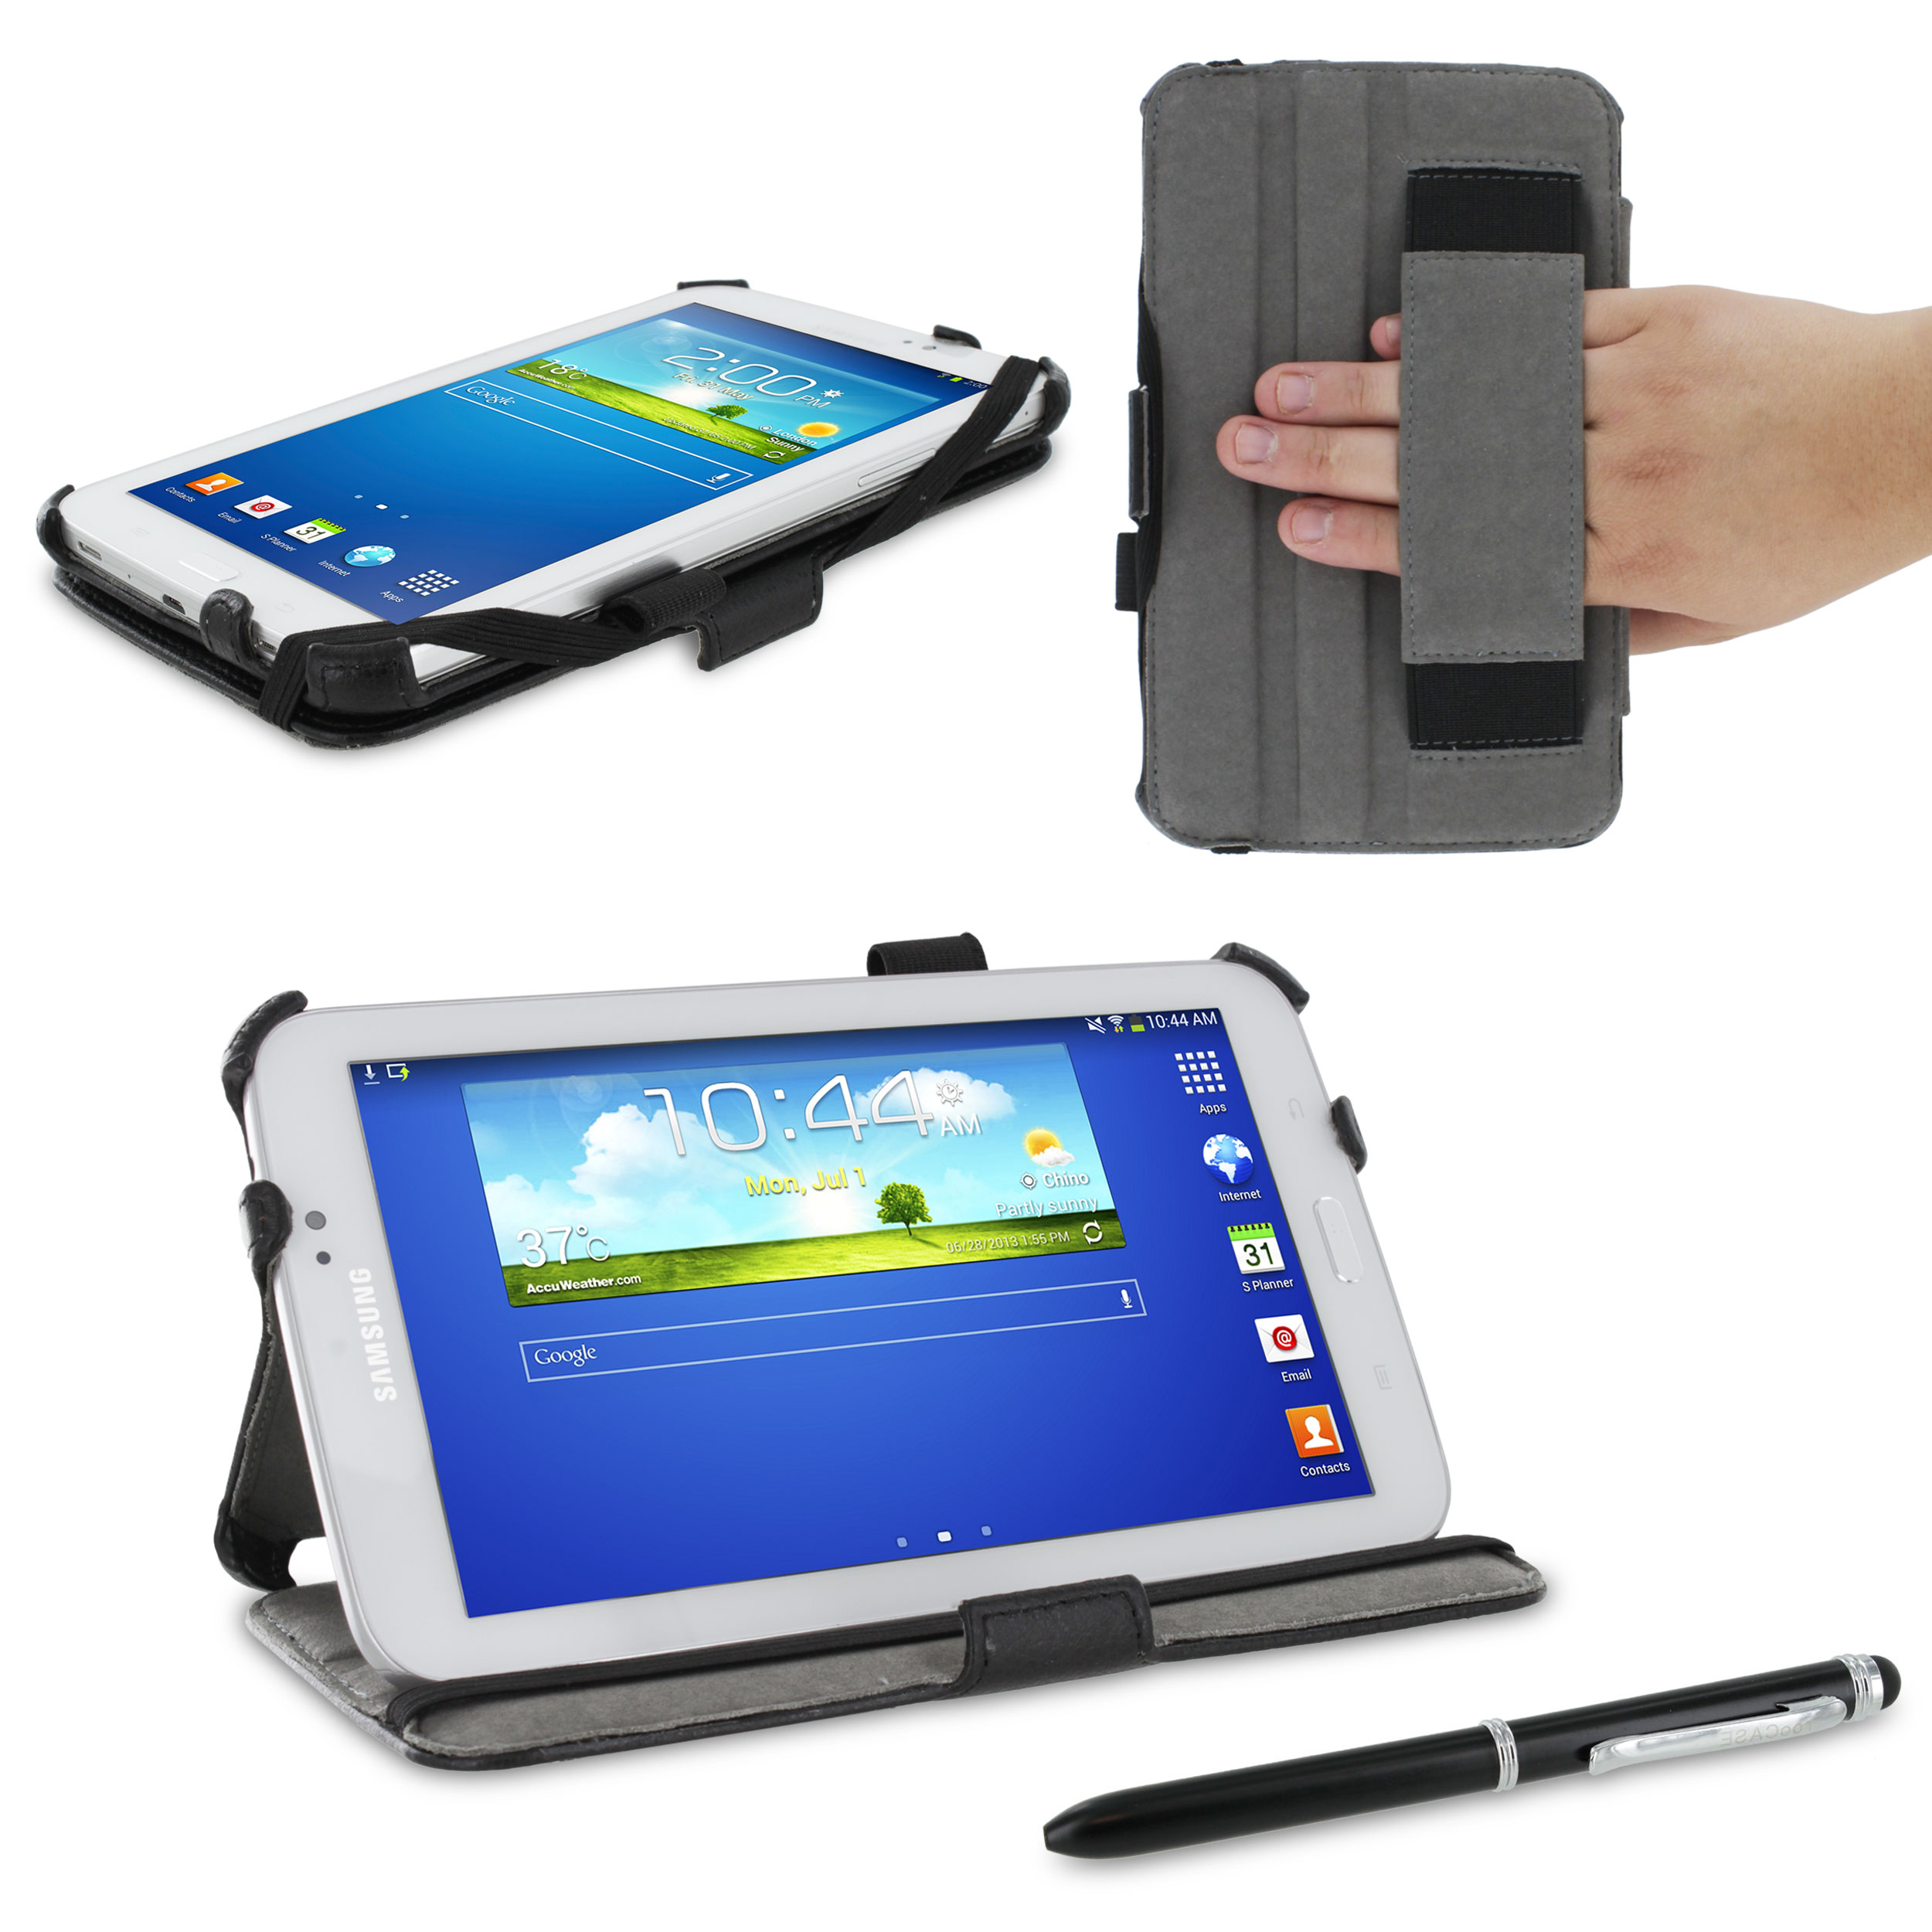 rooCASE Samsung GALAXY Tab 3 7.0 SM-T210R P3200 Slim-Fit Multi Angle Case Cover - Black (with Pen Stylus)